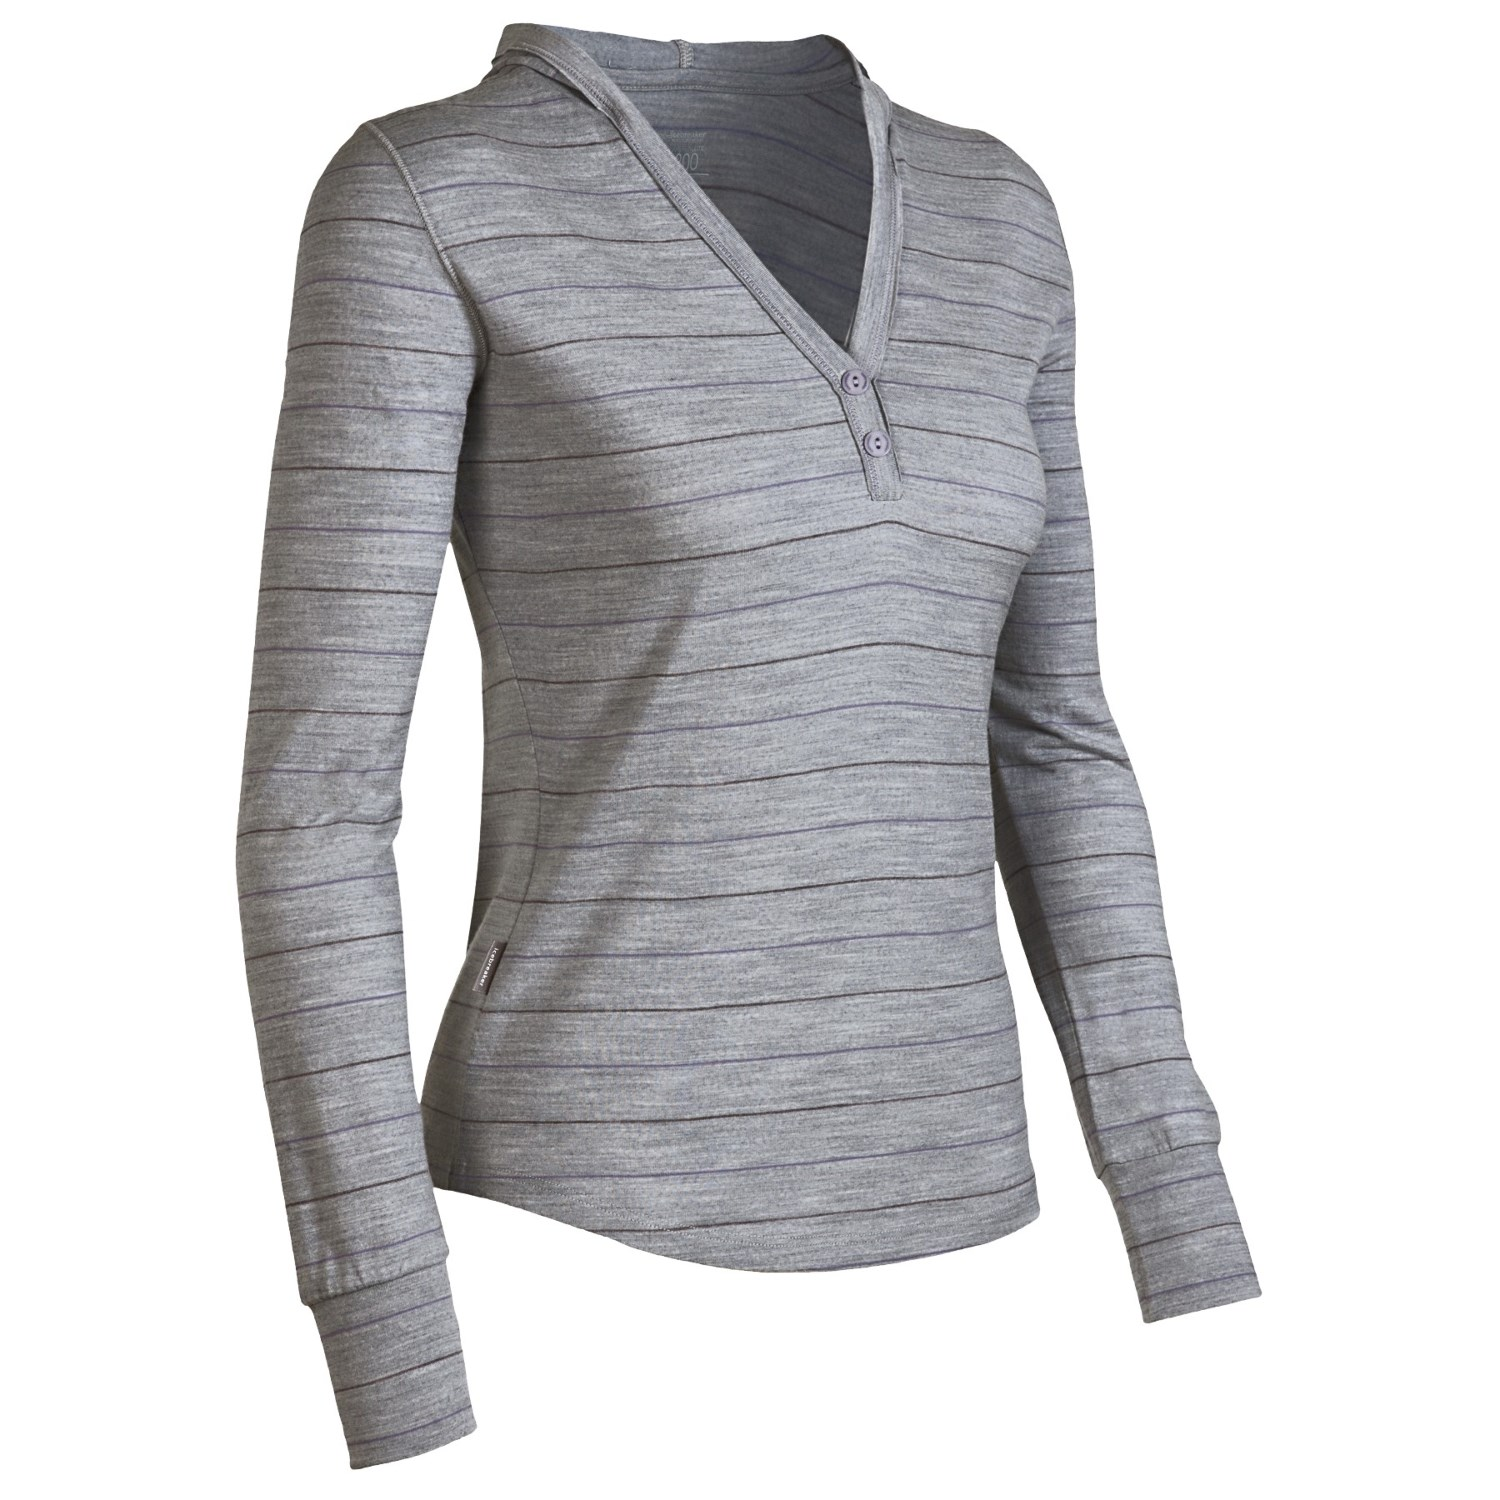 Icebreaker superfine 200 bliss hooded shirt merino wool for Merino wool shirt womens